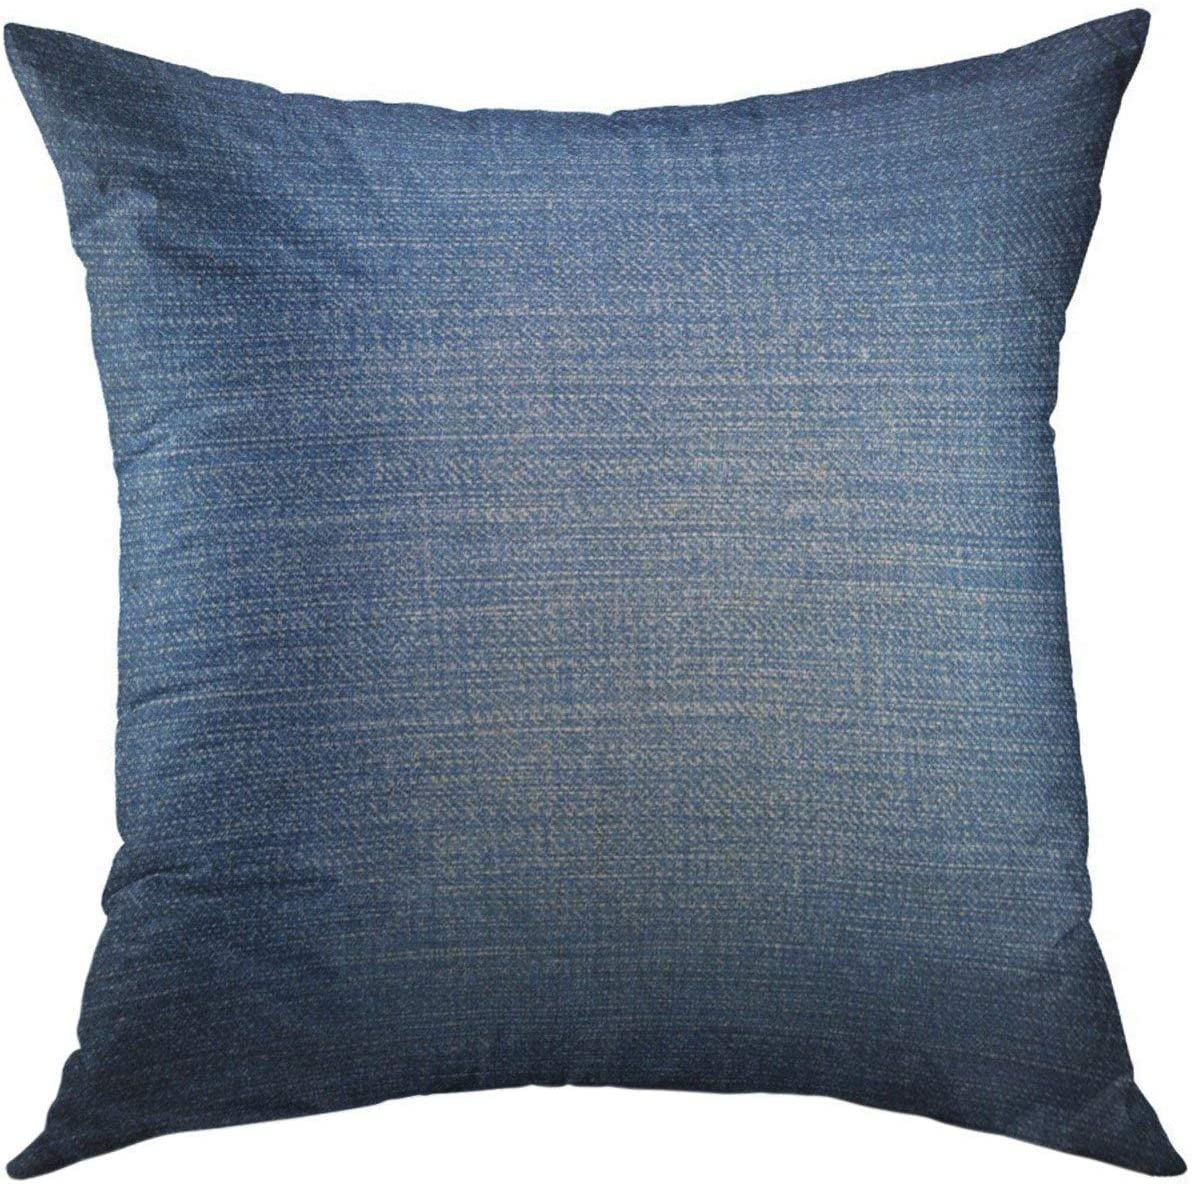 Mugod Decorative Throw Pillow Cover for Couch Sofa,Black Denim of Blue Jeans Blank Canvas Cotton Linen Home Decor Pillow Case 18x18 Inch